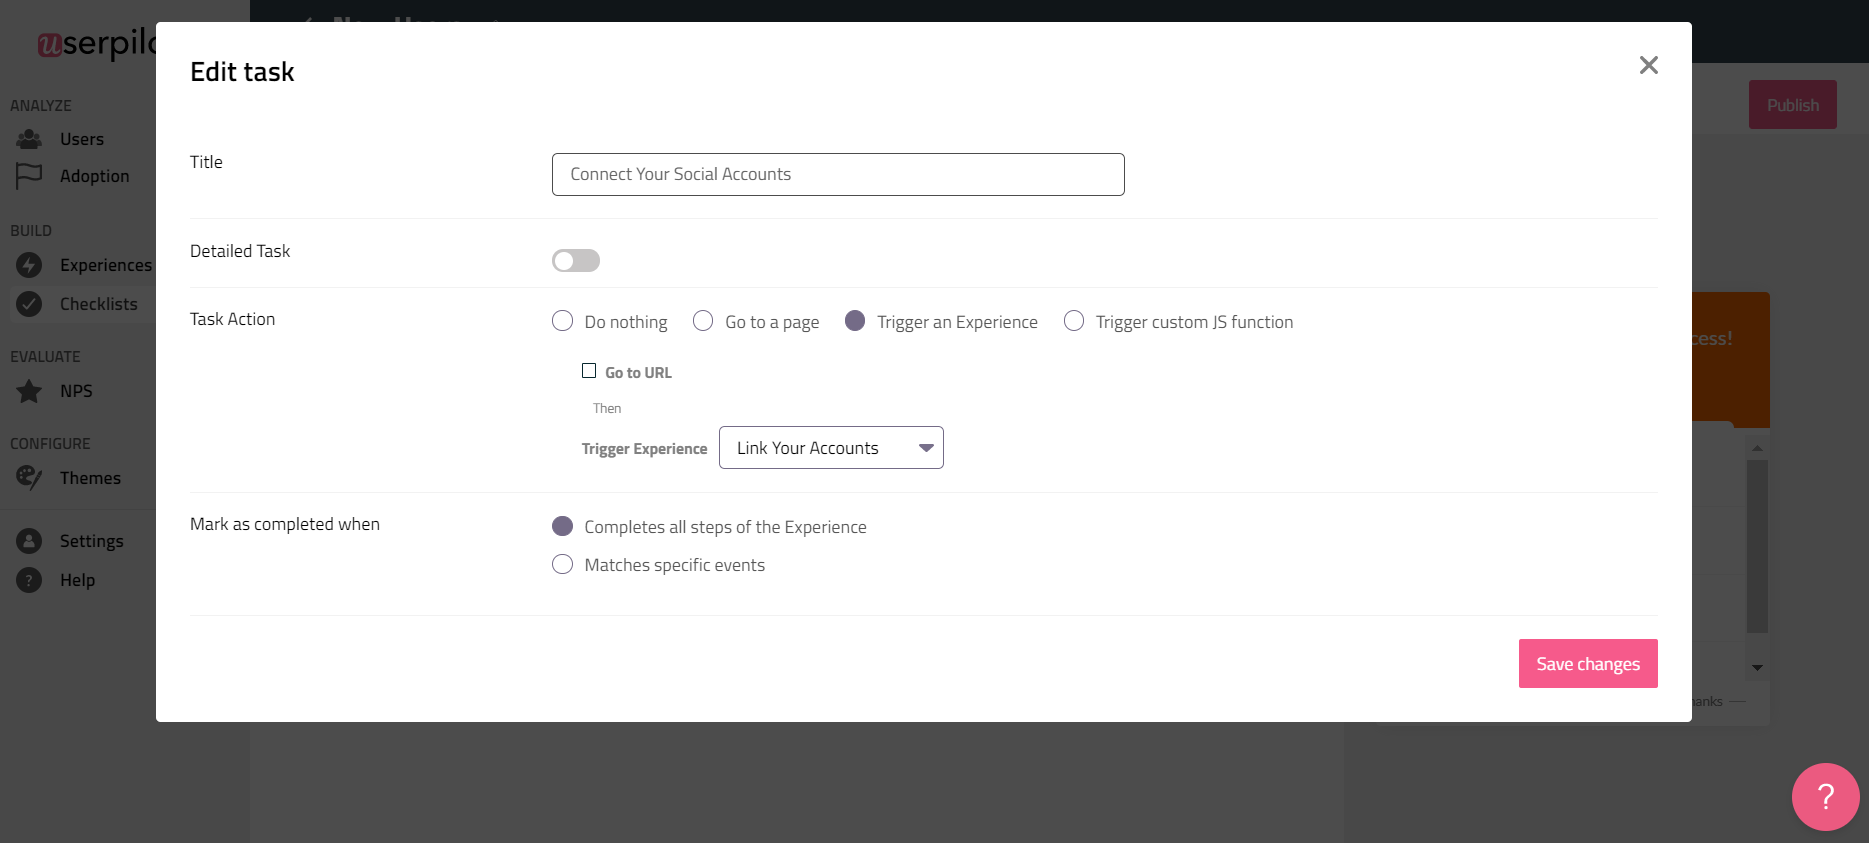 Connect your social accounts goal